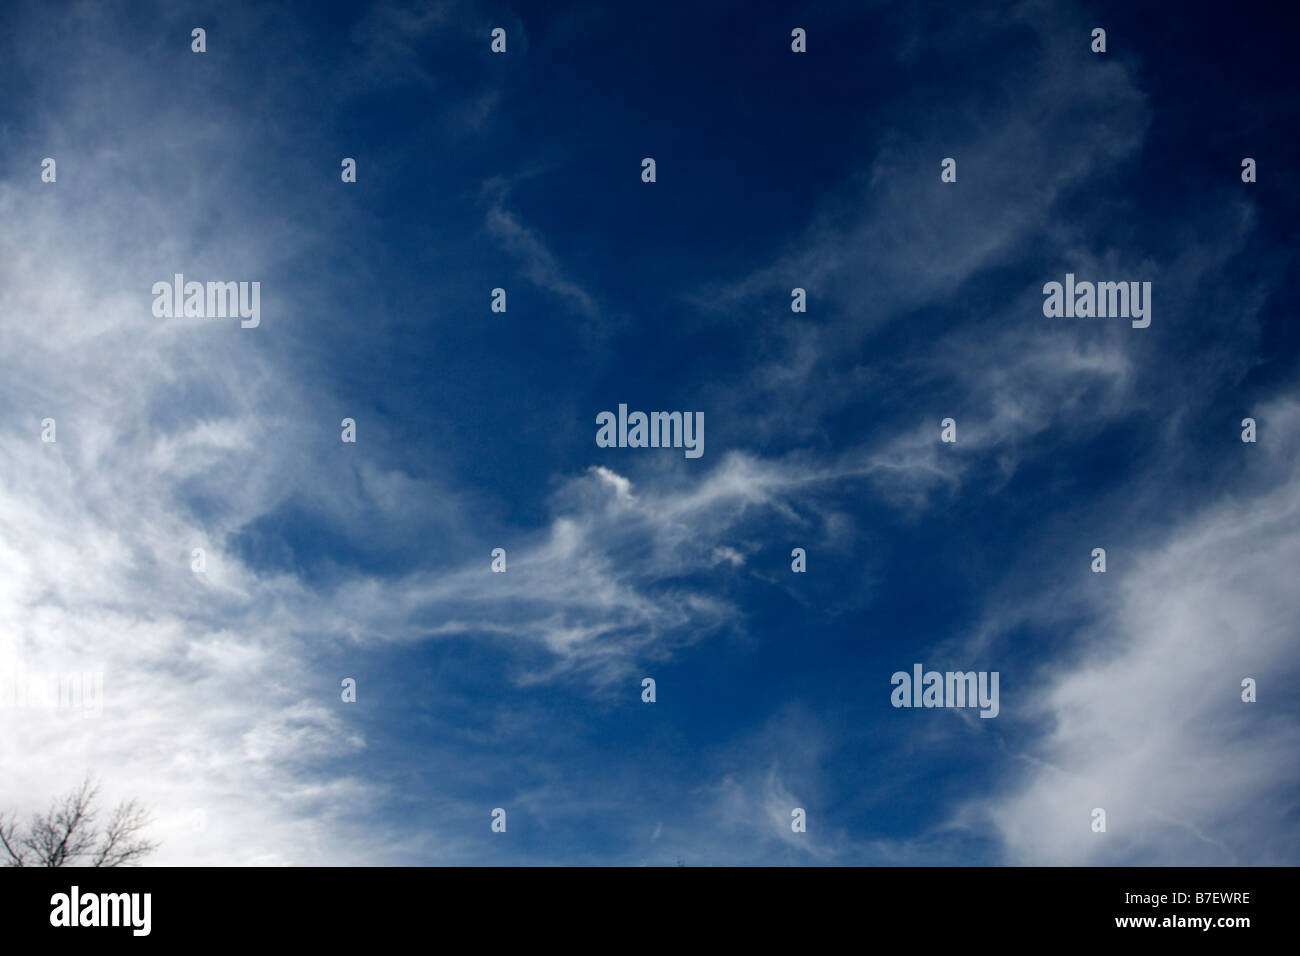 Blue sky with high cirrus or stratocirrus clouds. - Stock Image